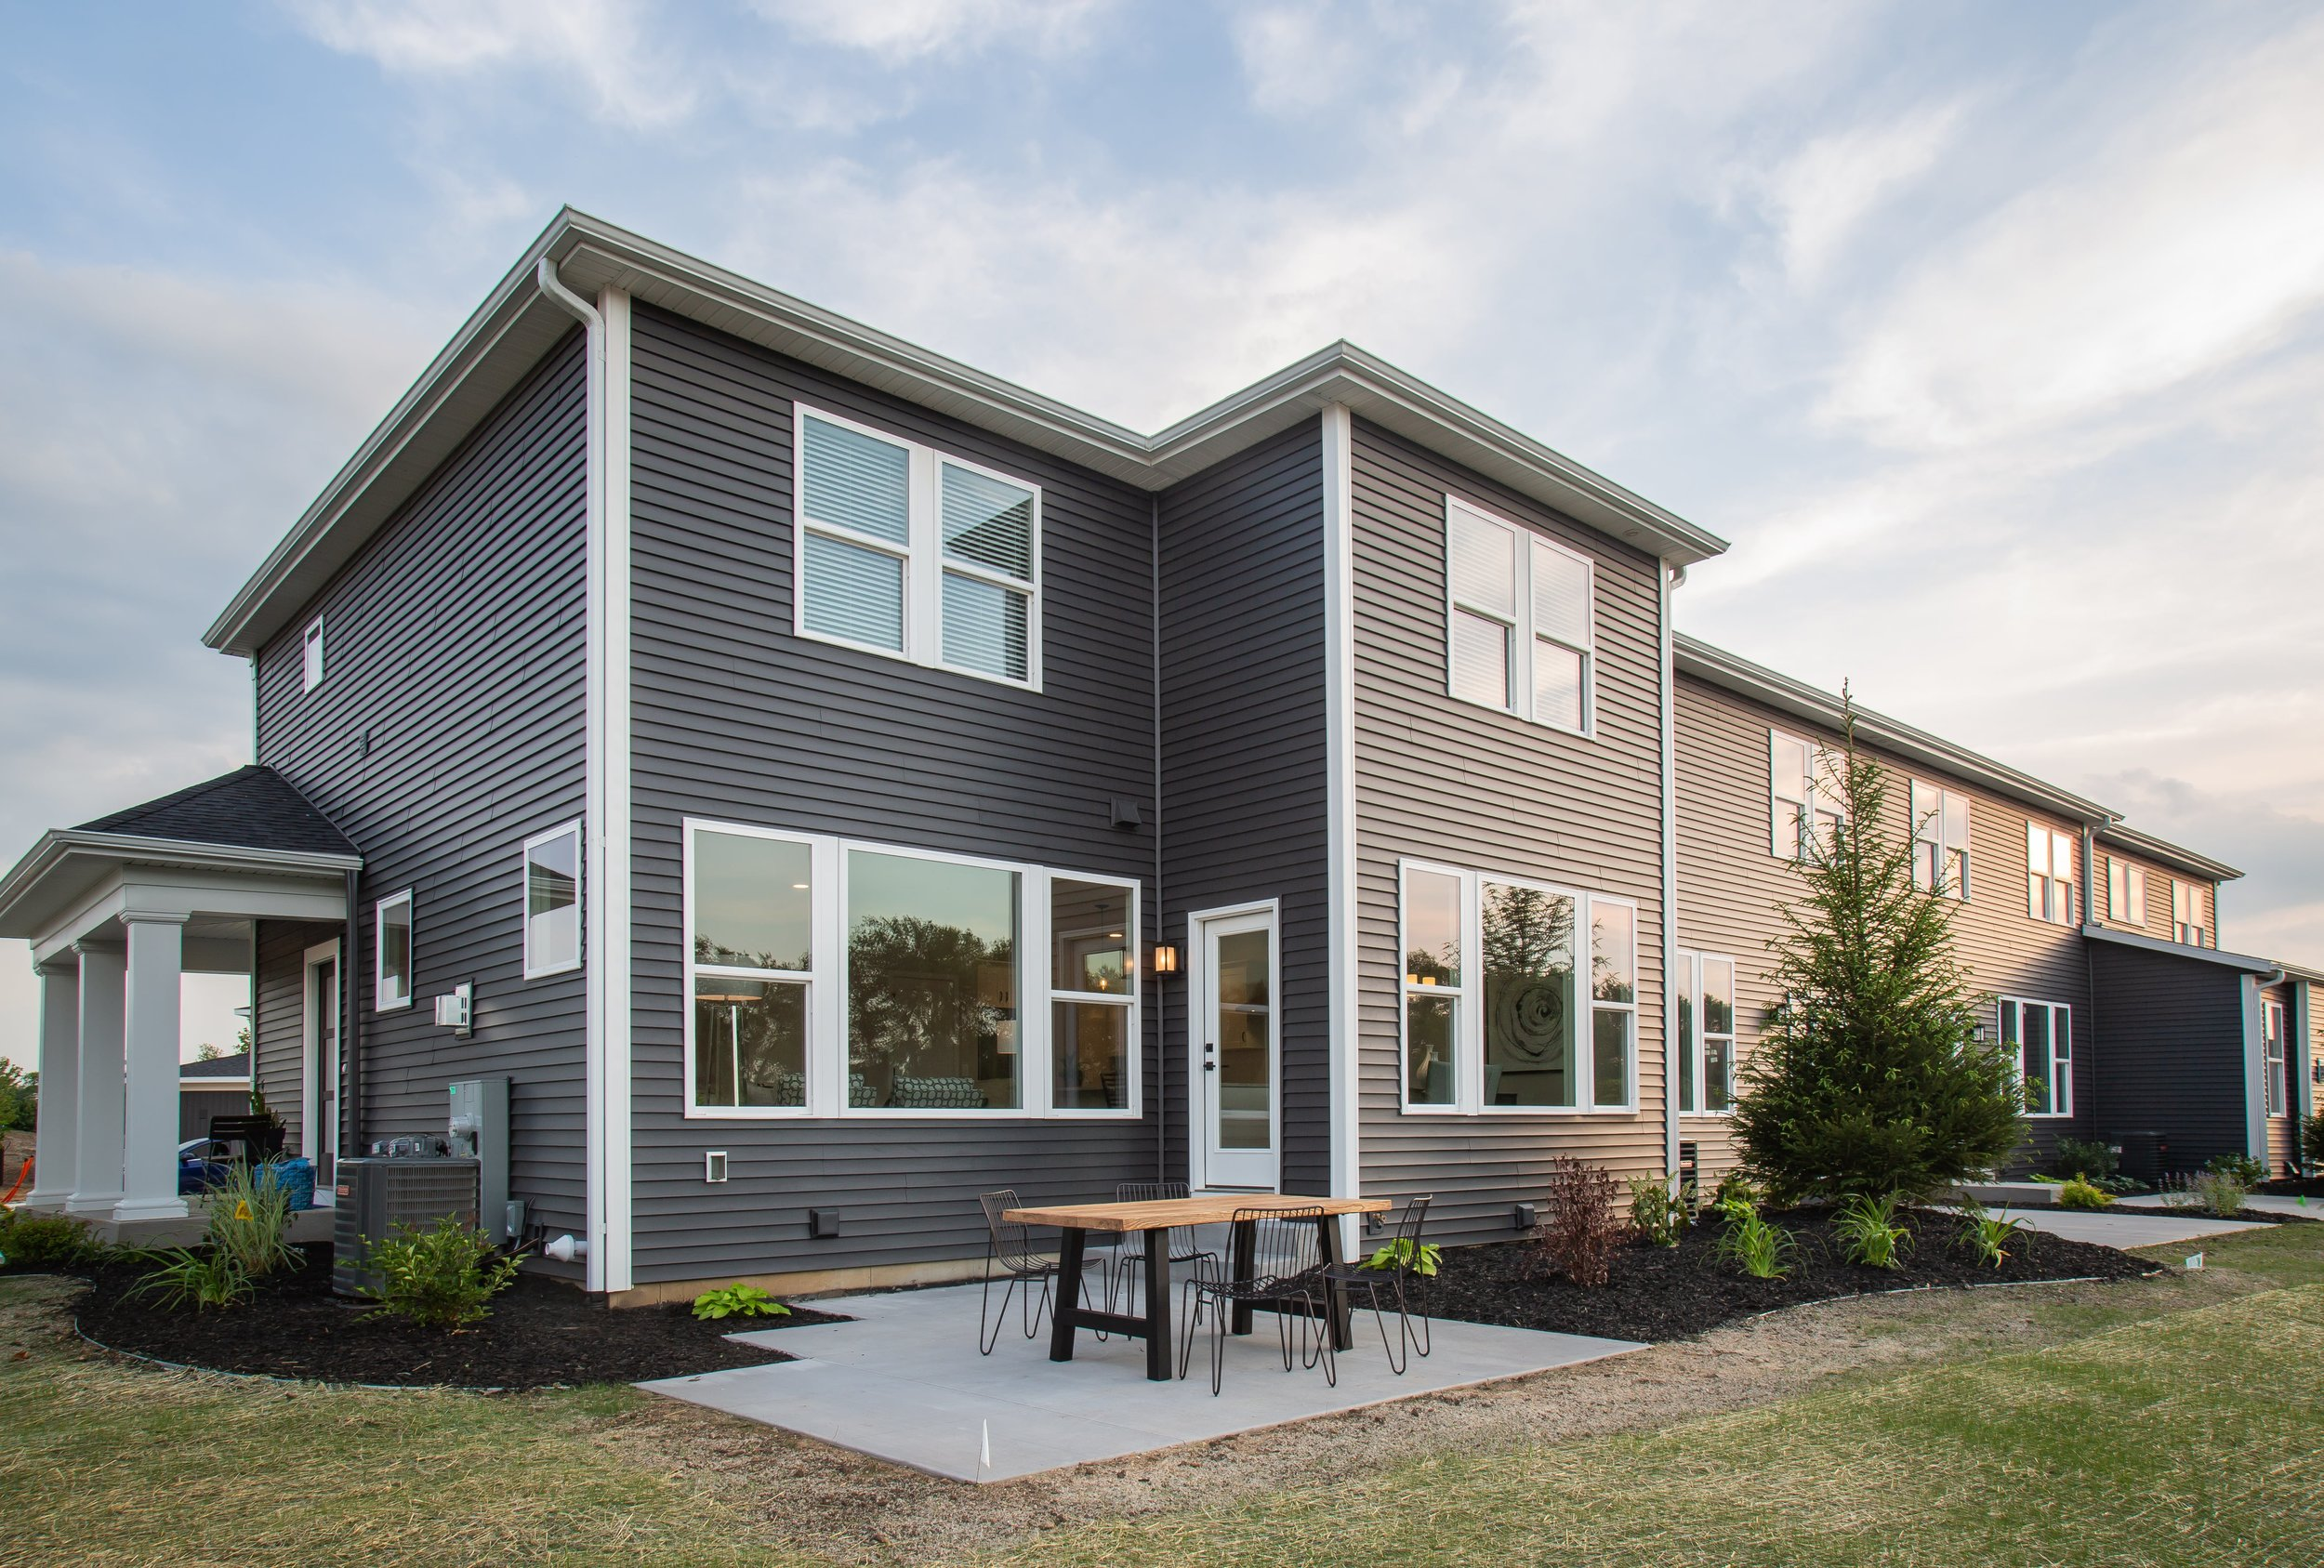 6+25+2018+TW-01-23-Anthracite_Rear+Exterior_Patio-min[1].JPG